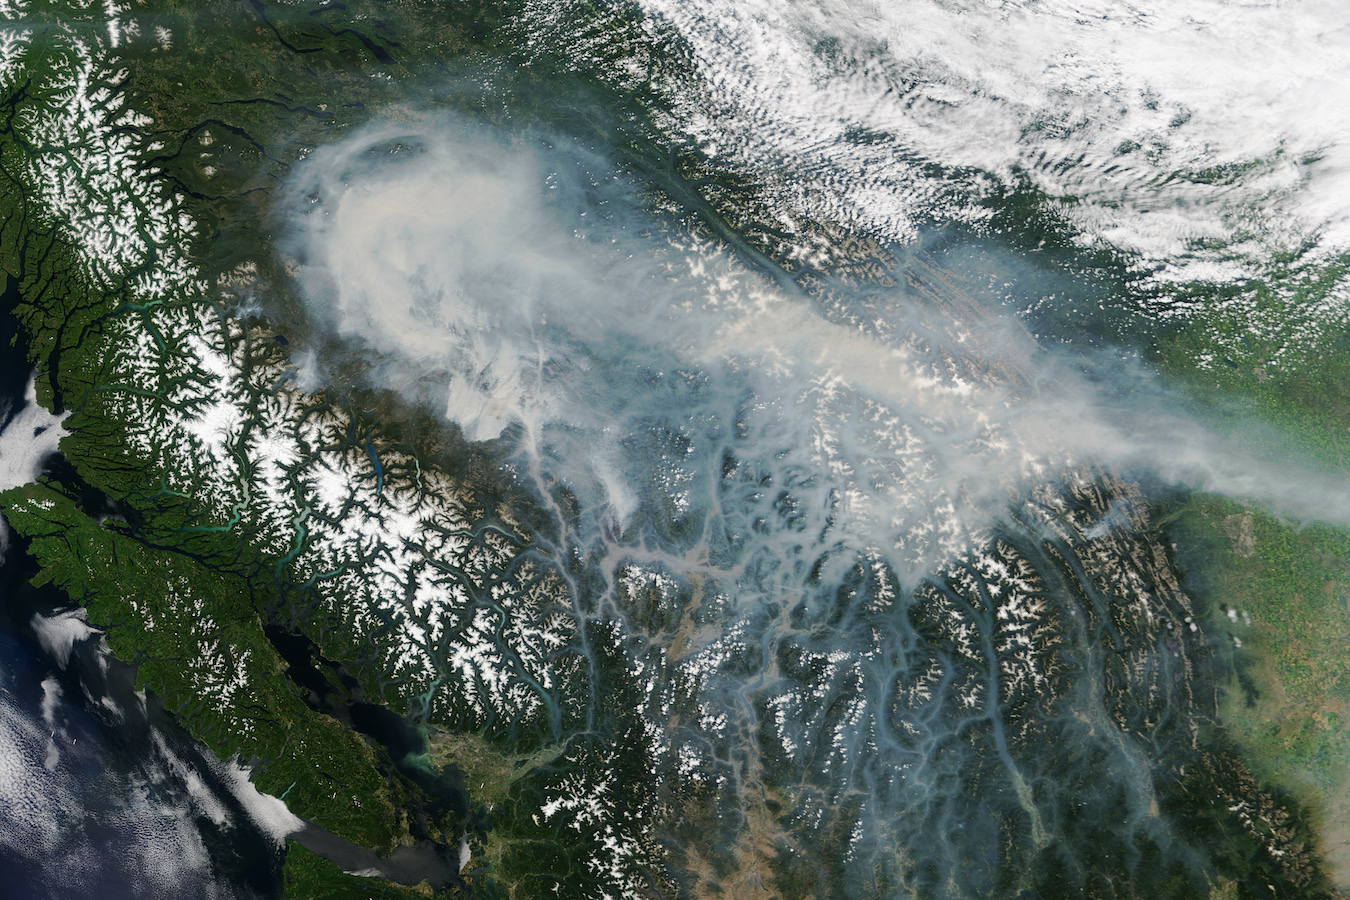 Today's Image of the Day comes thanks to the NASA Earth Observatory and features a look at forest fires burning in British Columbia, Canada.